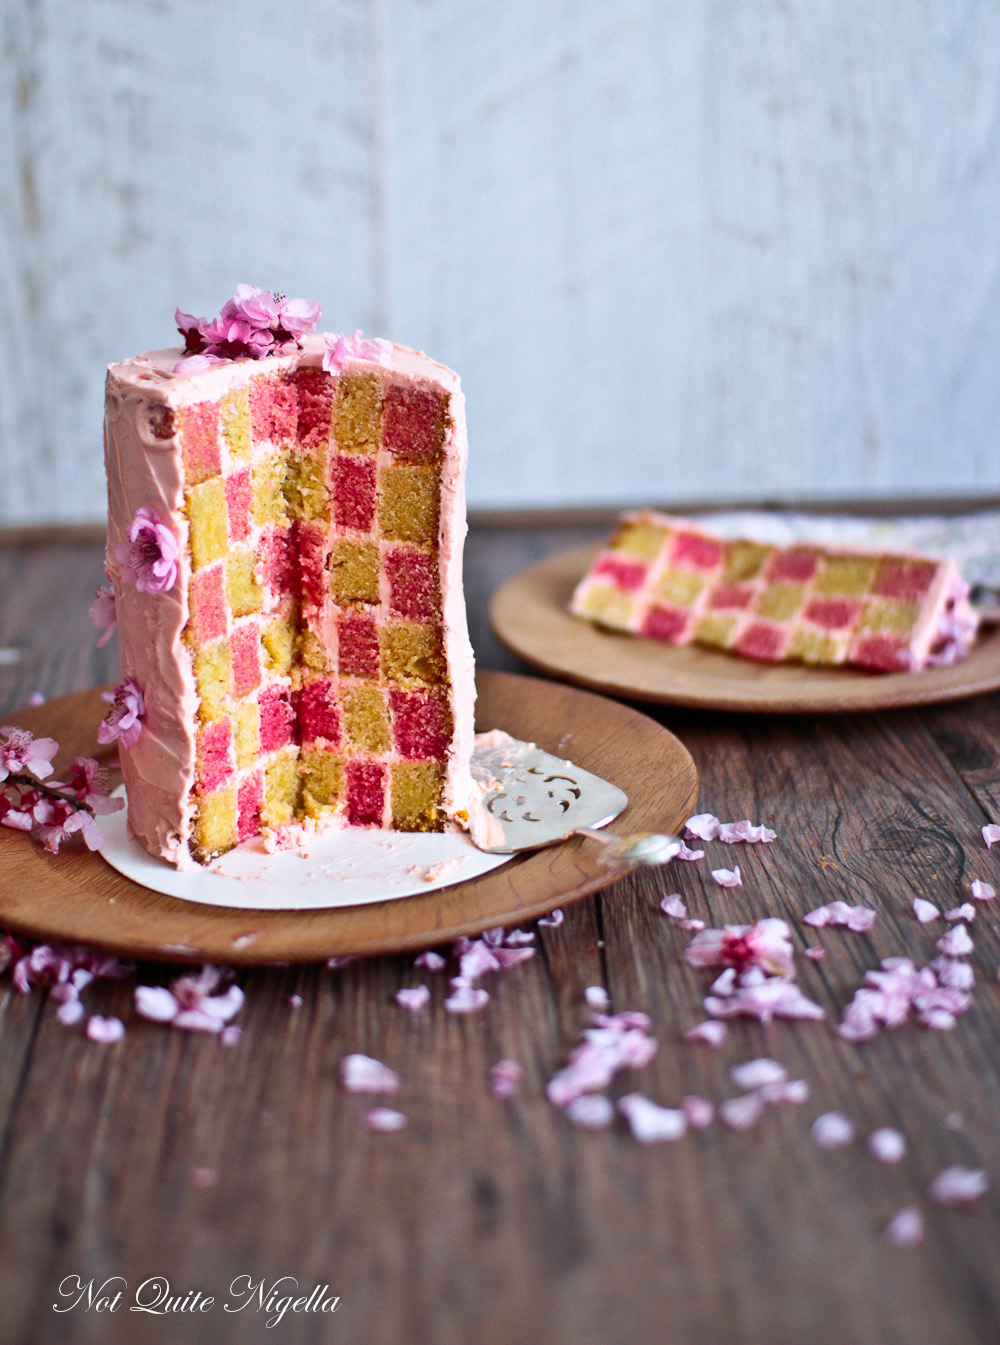 Cherry blossom checkerboard cake recipe